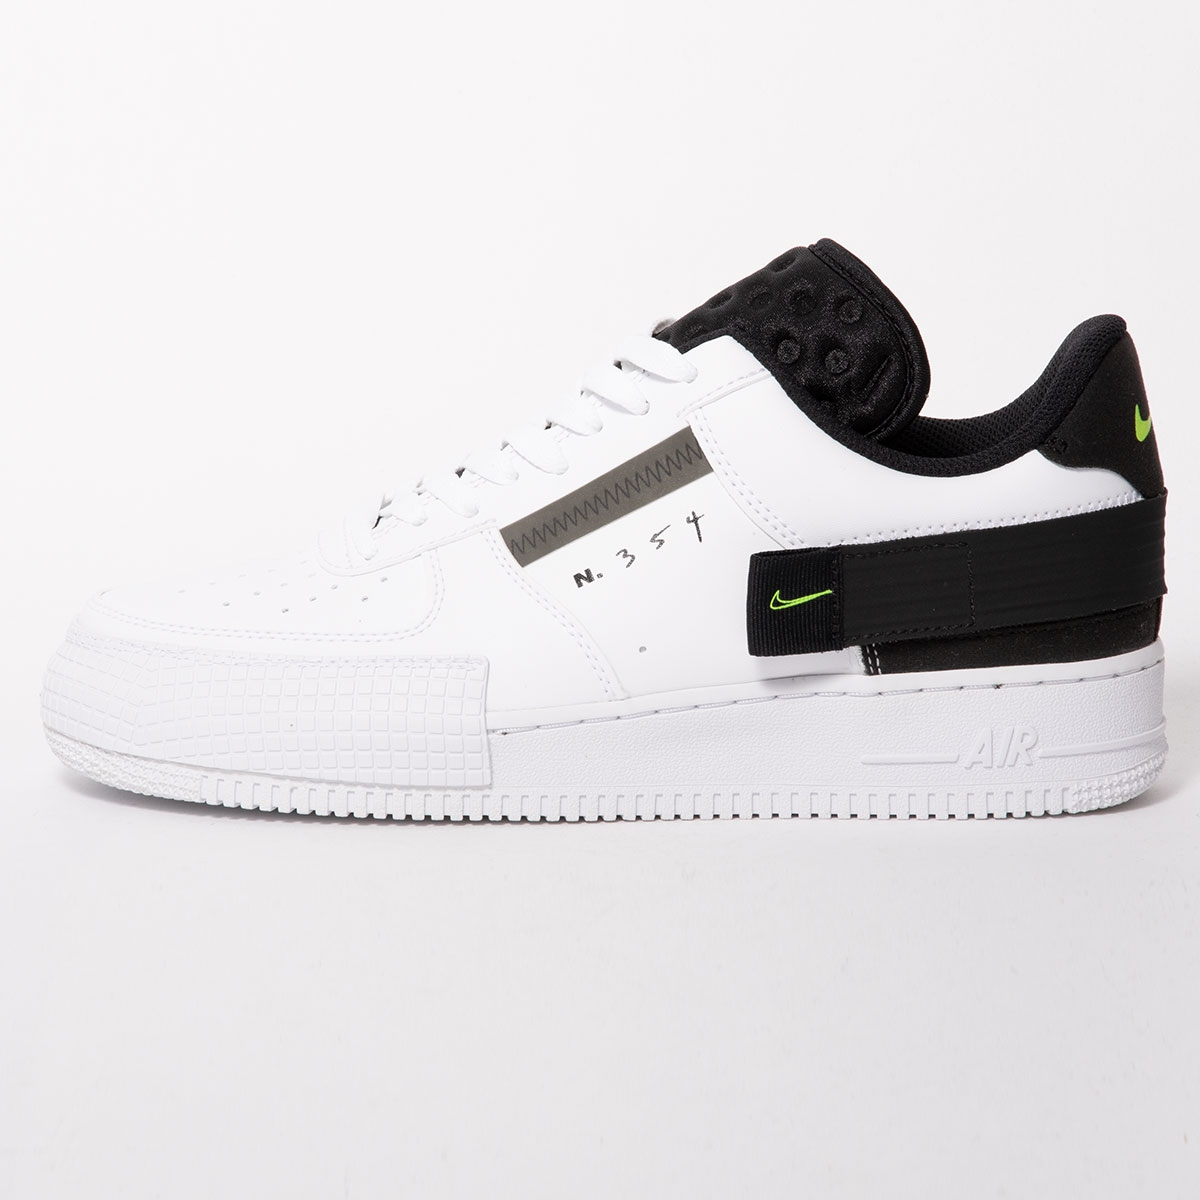 nike air force 1 type bianche e nere